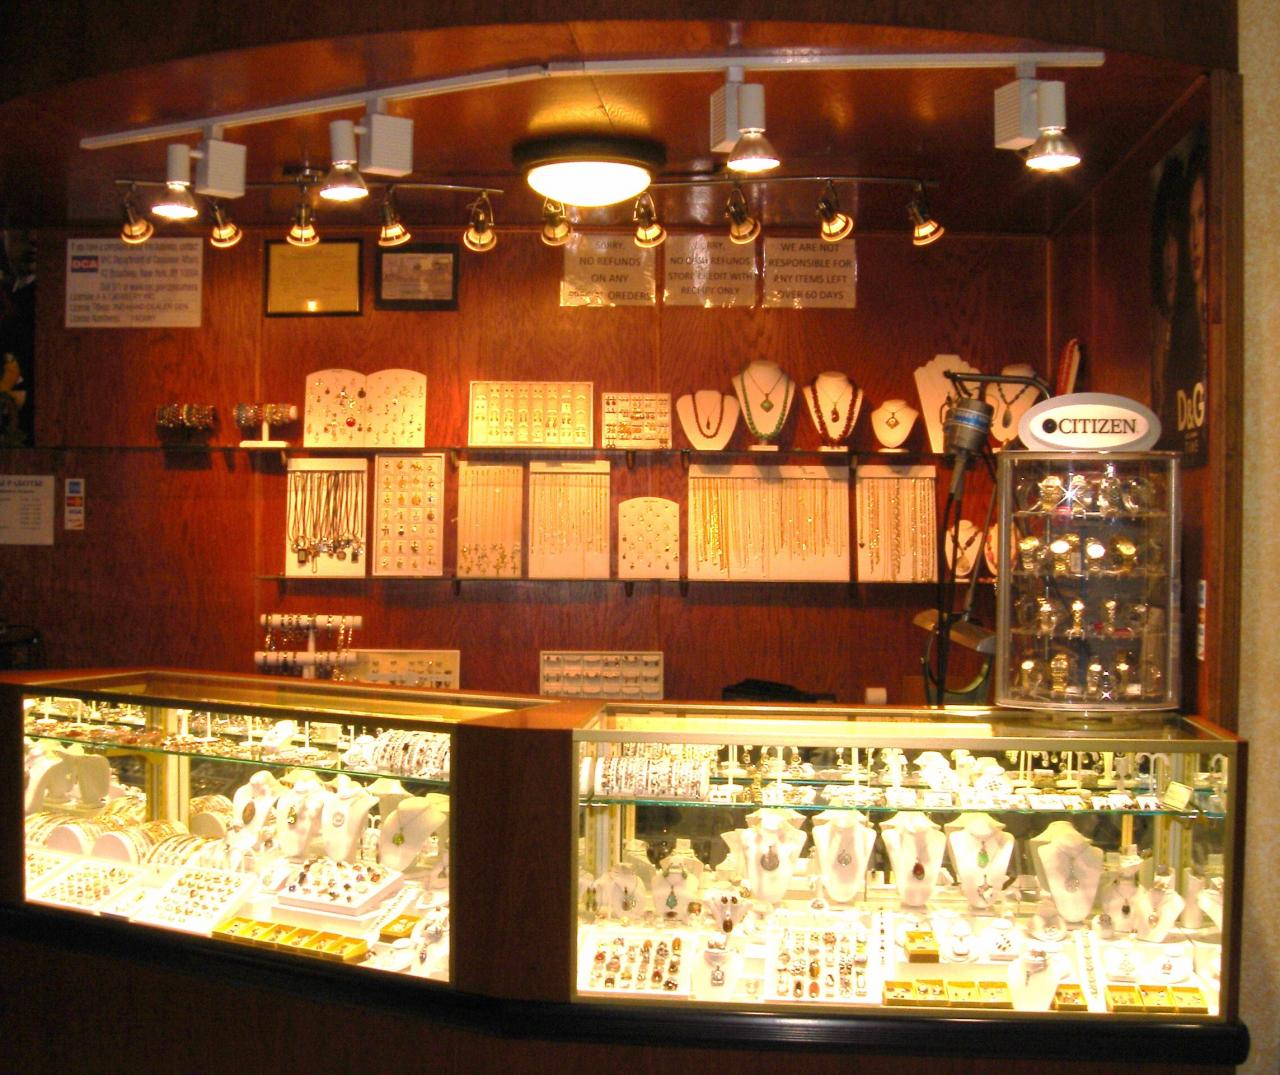 Inspiration for an abundant jewelry display showcase for pieces such as watches, necklaces, rings or bracelets, all together.